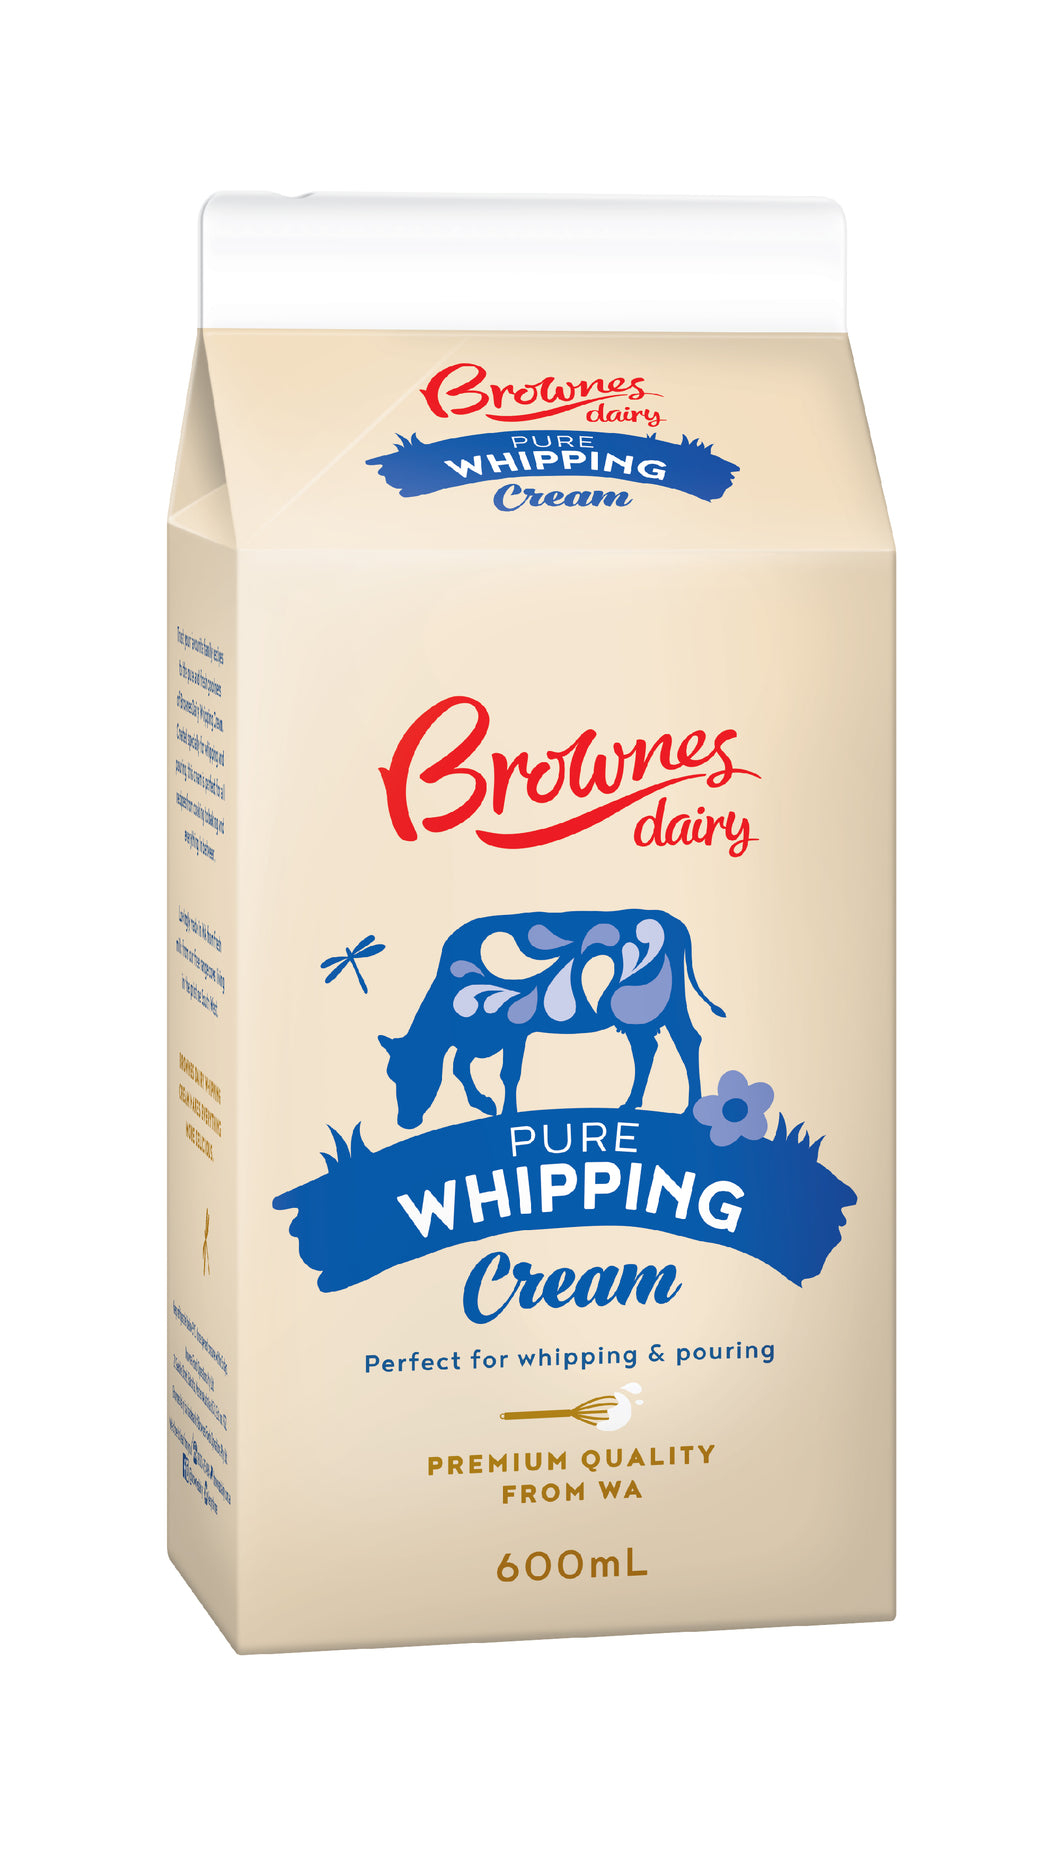 Brownes Dairy Whipping Cream 600mL